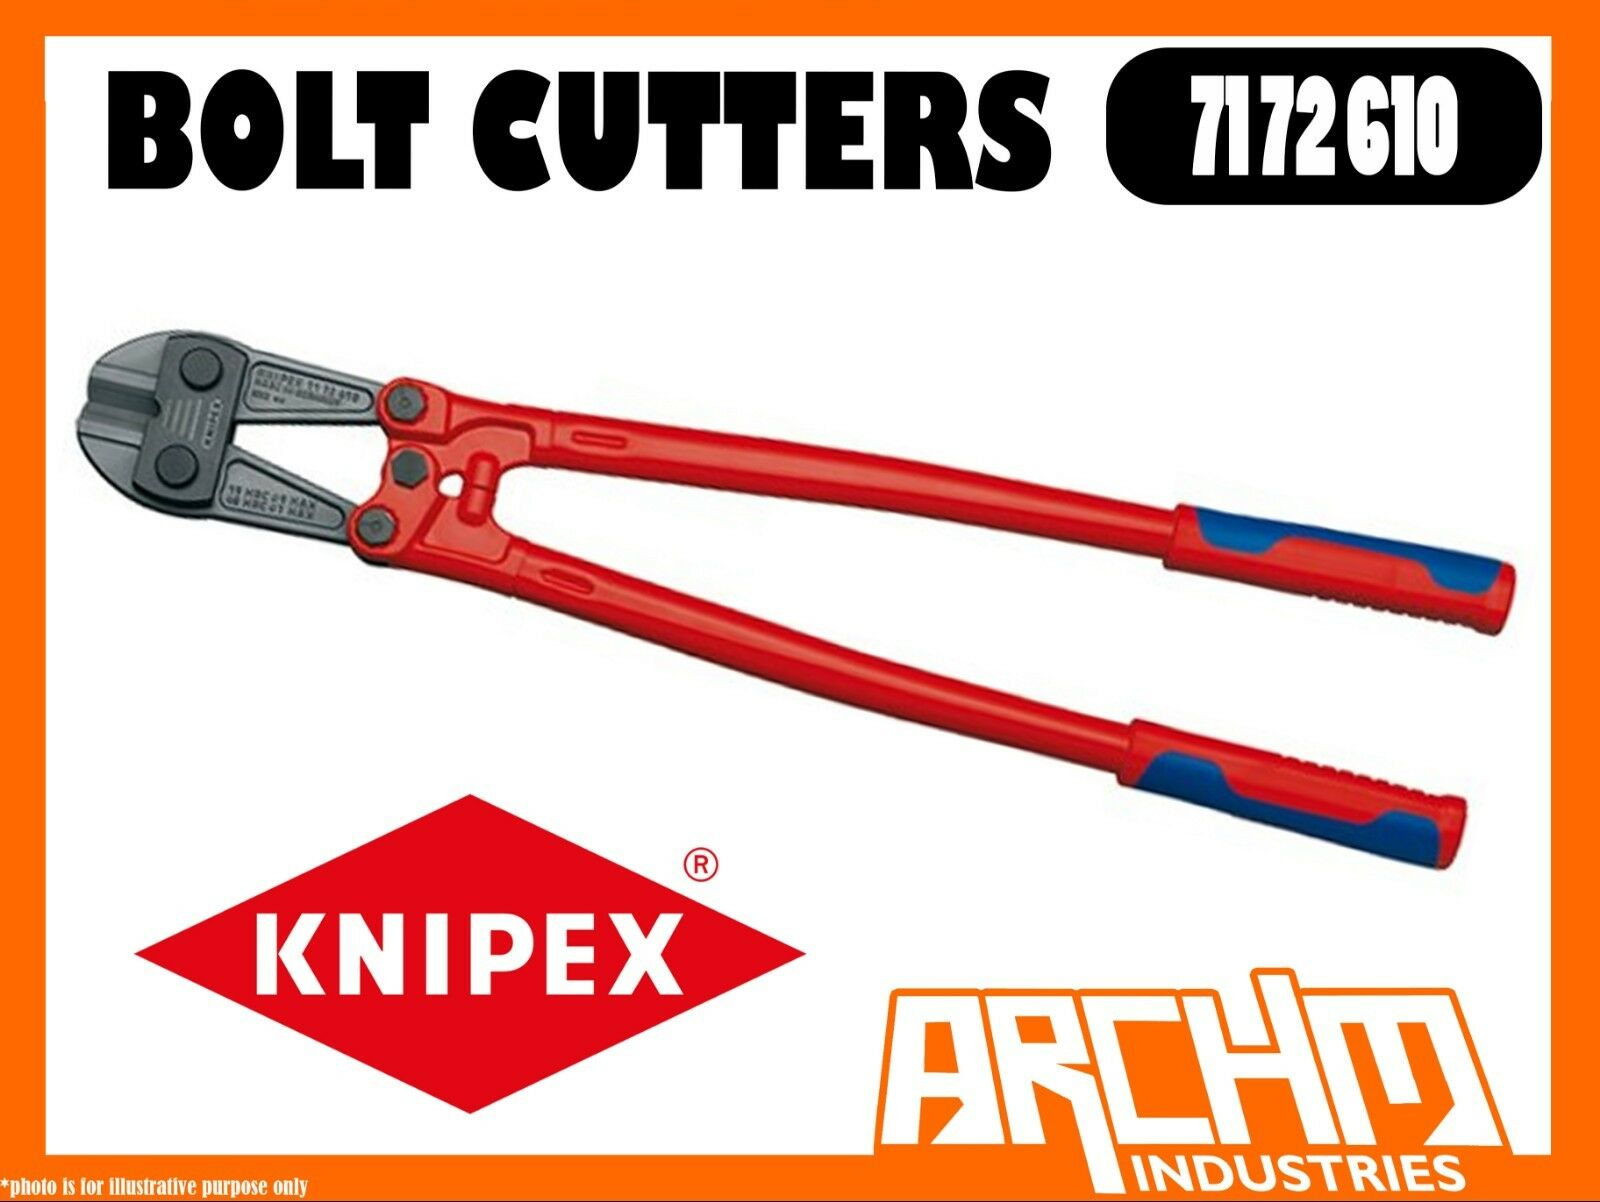 KNIPEX 7172610 - BOLT CUTTERS - 610MM - 48 HRC ROBUST CUTTING EDGES STEEL